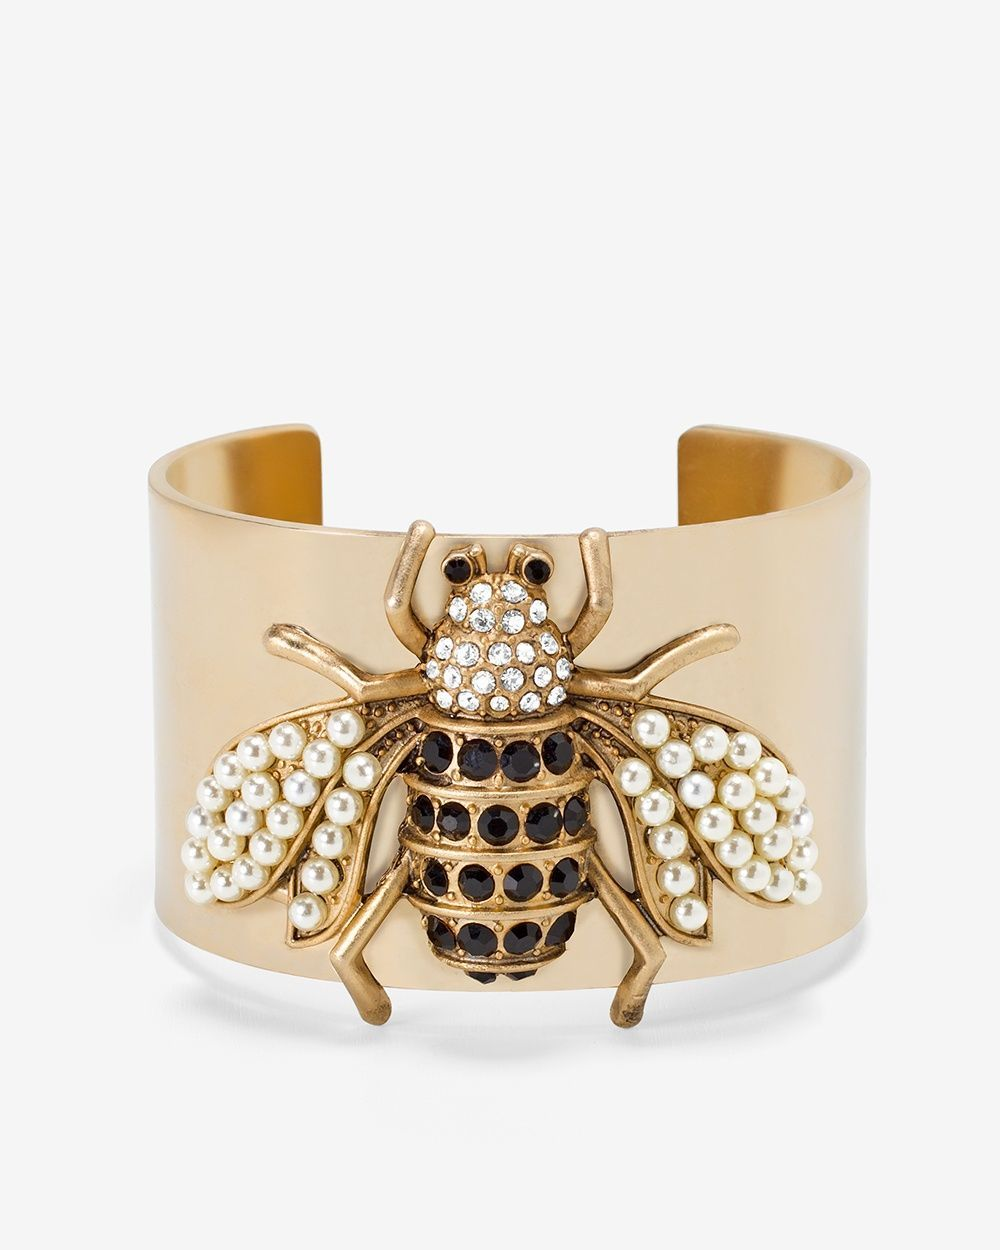 035245a2d01 Women's Bumble Bee Cuff Bracelet by WHBM | Products | Bee jewelry ...